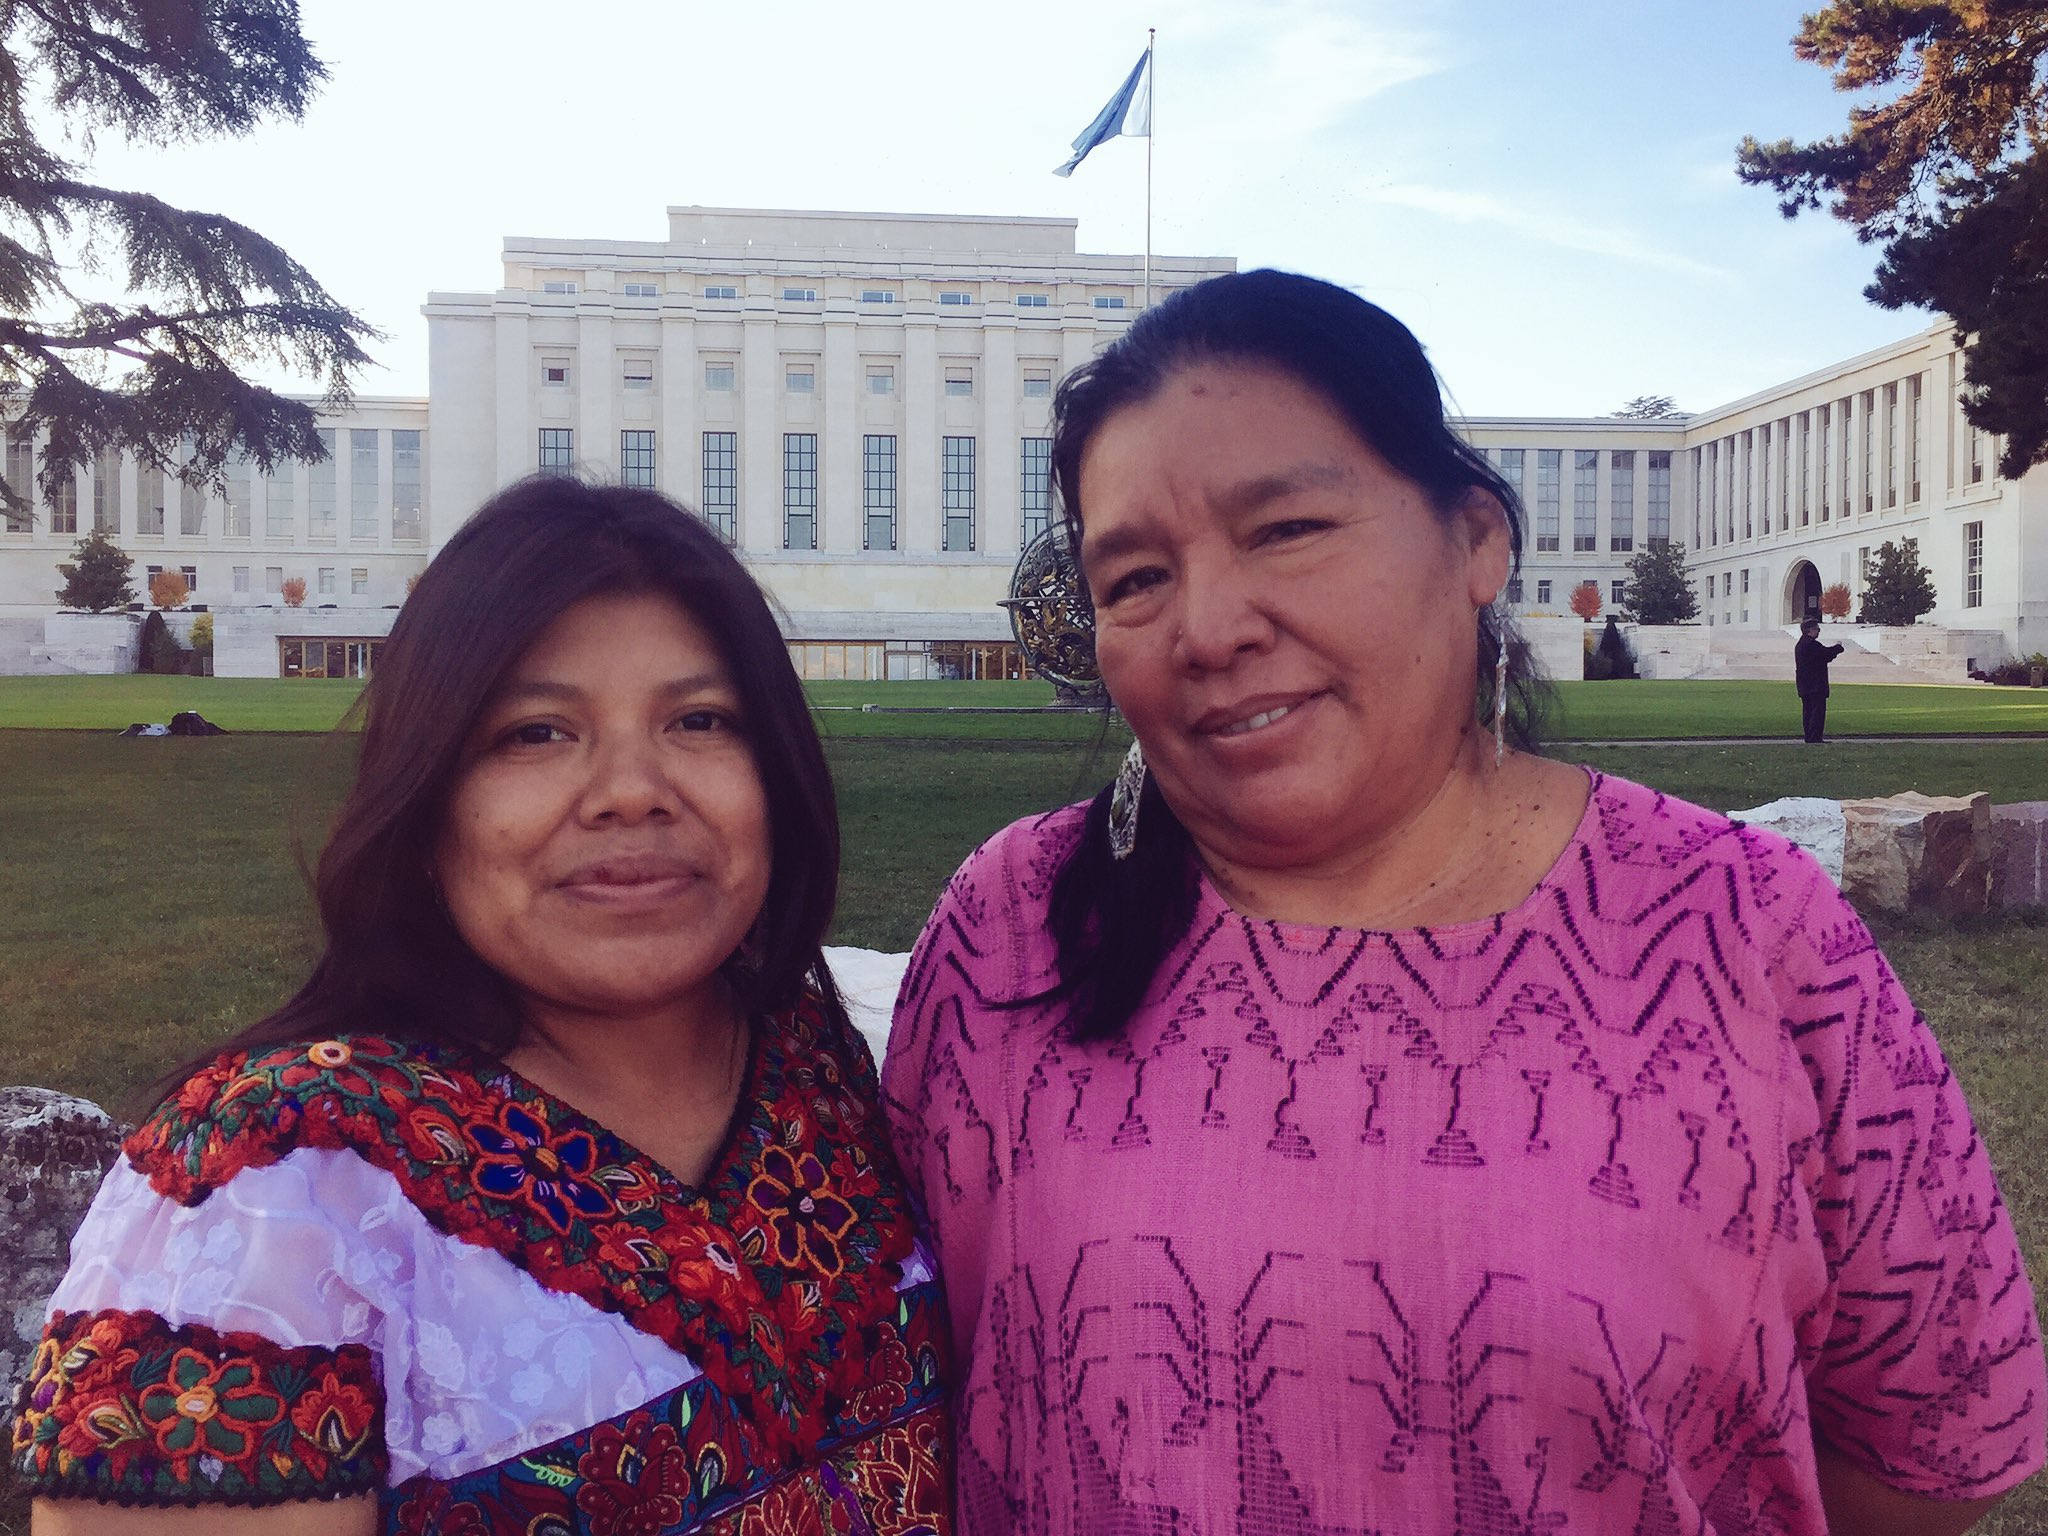 These 2 #RealWonderWomen are brave enough to come all the way from Guatemala to speak out against #CorporateAbuse #BindingTreaty https://t.co/WjJrFOemb6